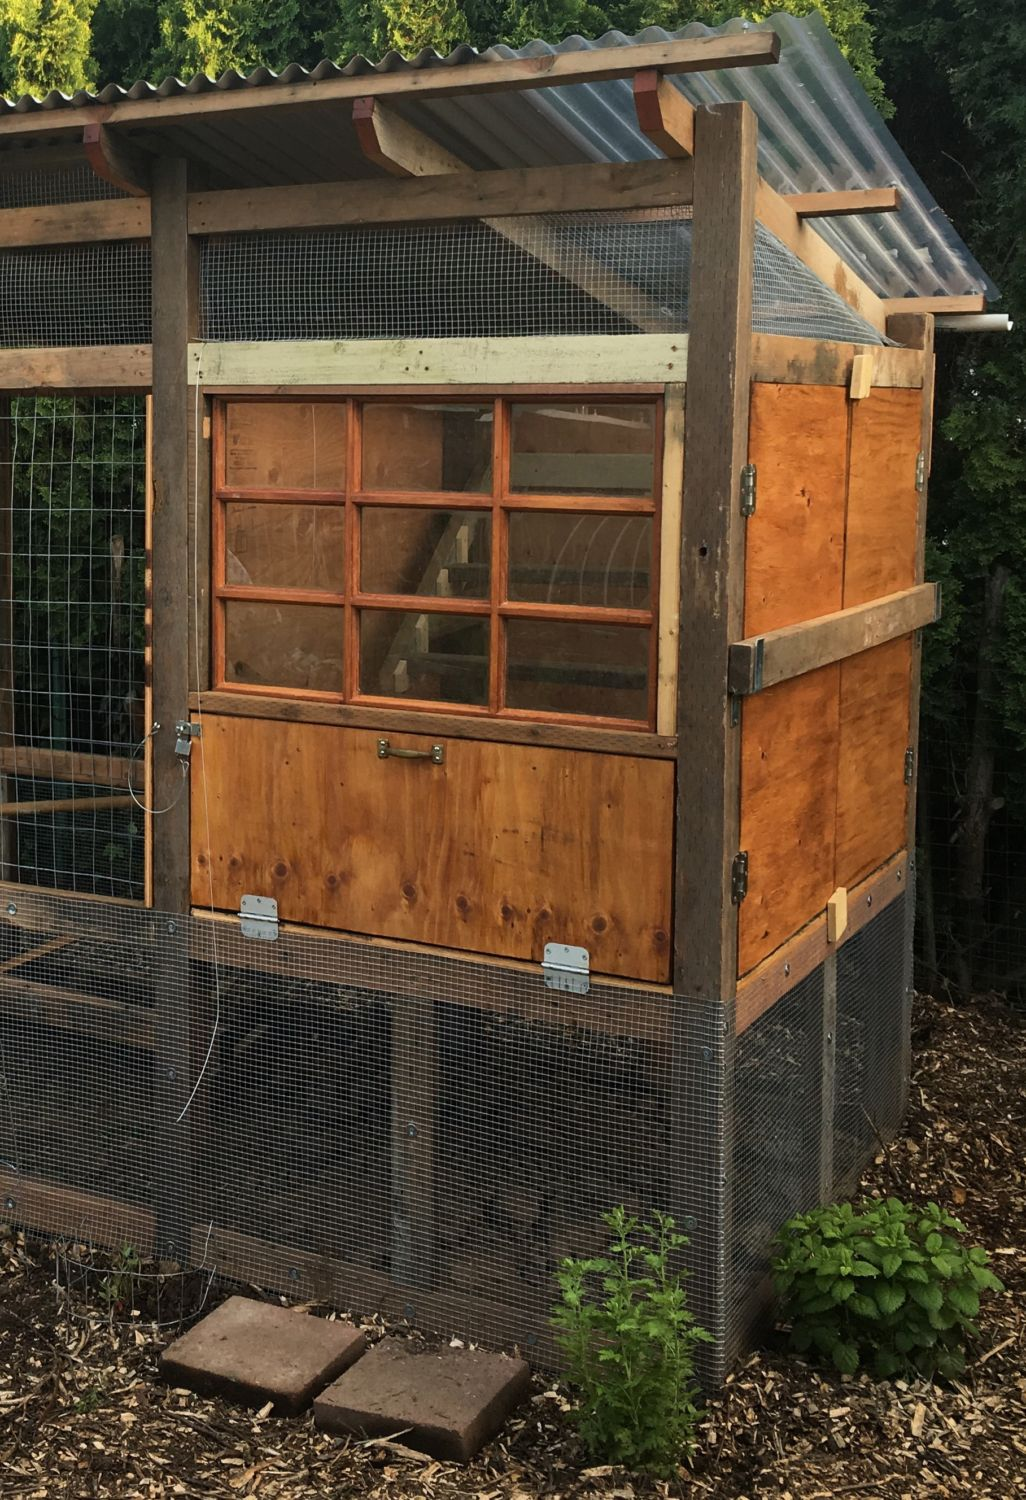 An Oregon Backyard Coop for 5